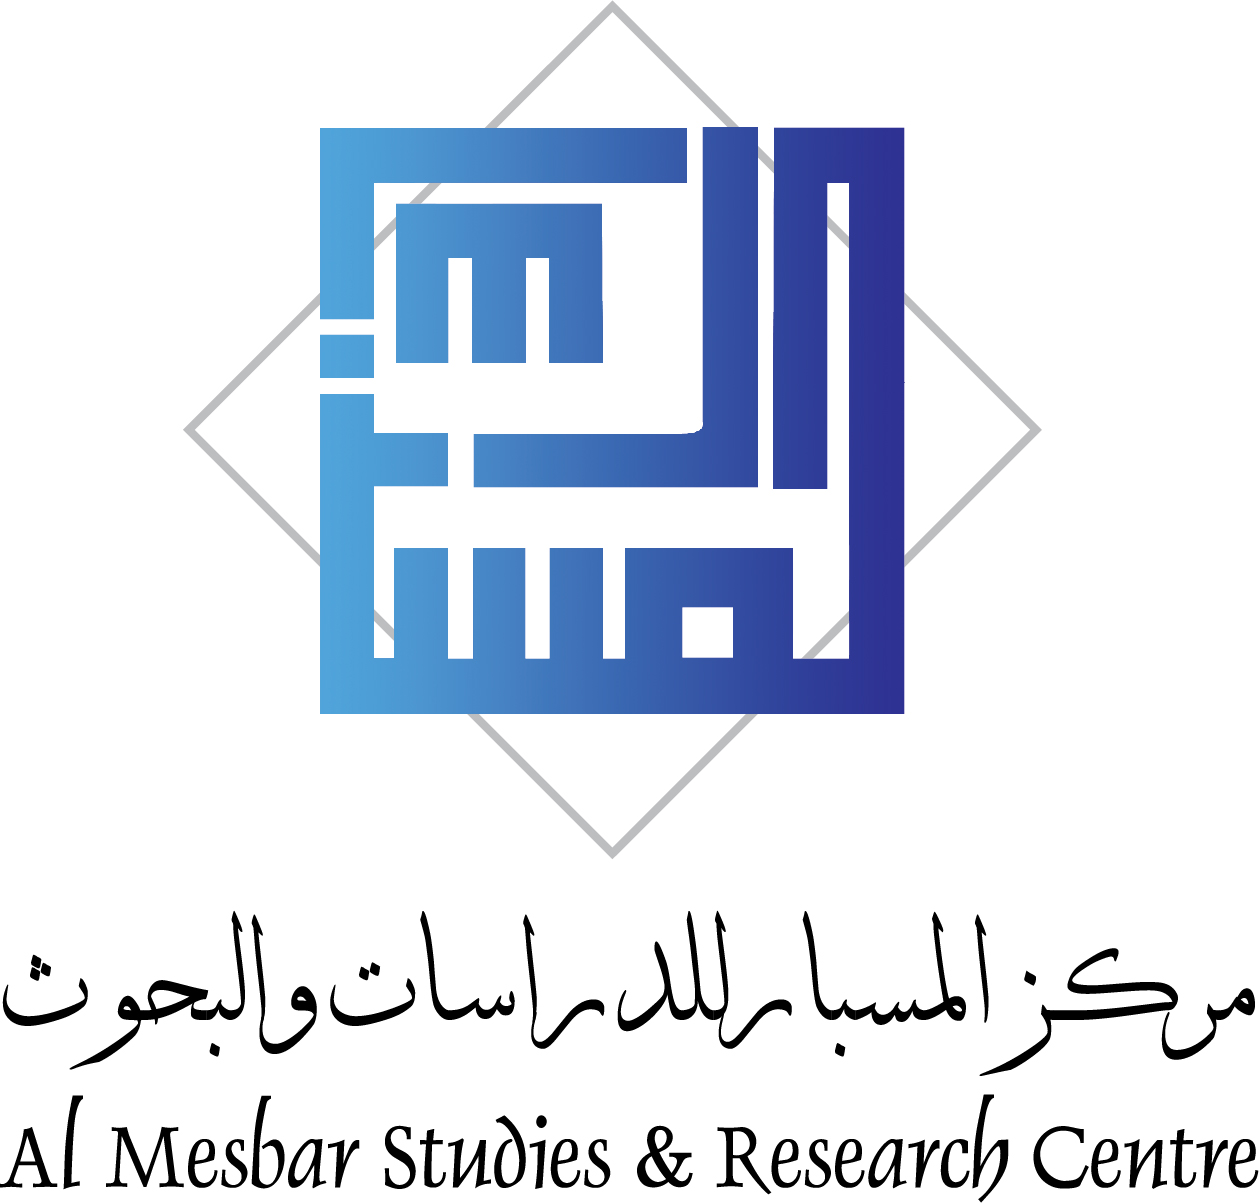 Al Mesbar Studies & Research Center